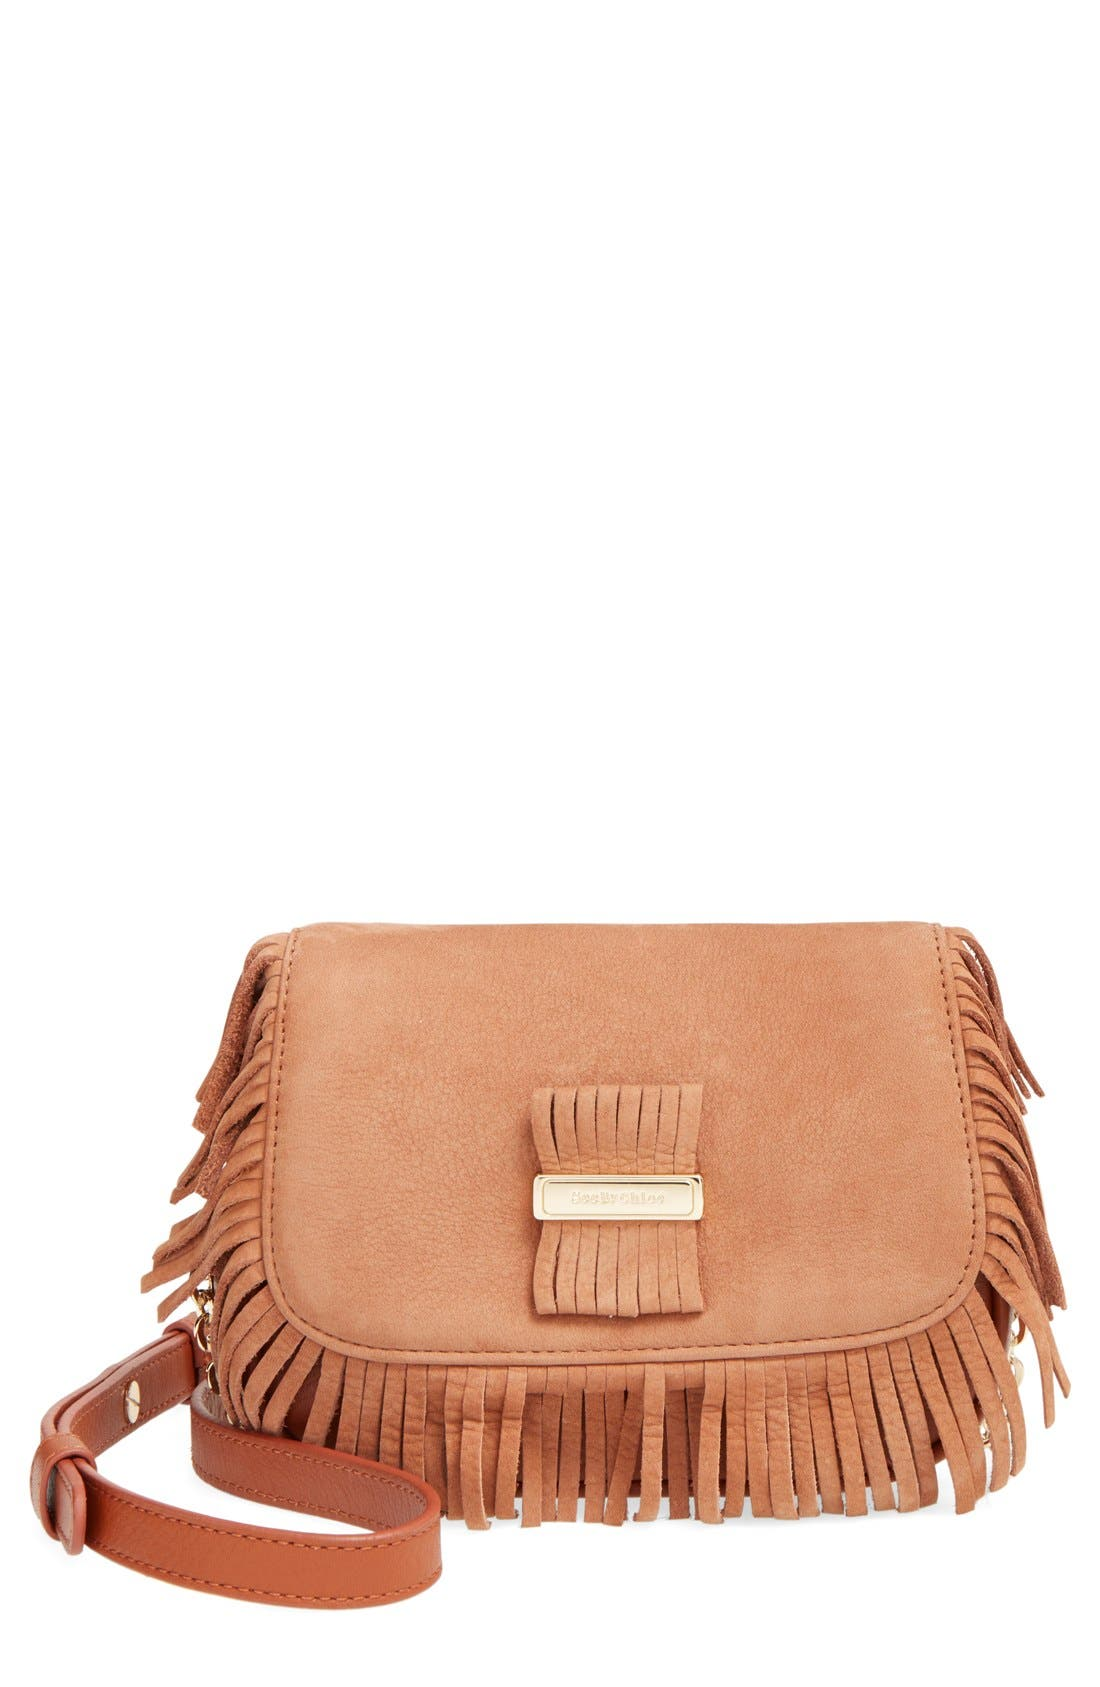 Main Image - See by Chloé 'Medium Paige' Fringe Leather & Suede Clutch